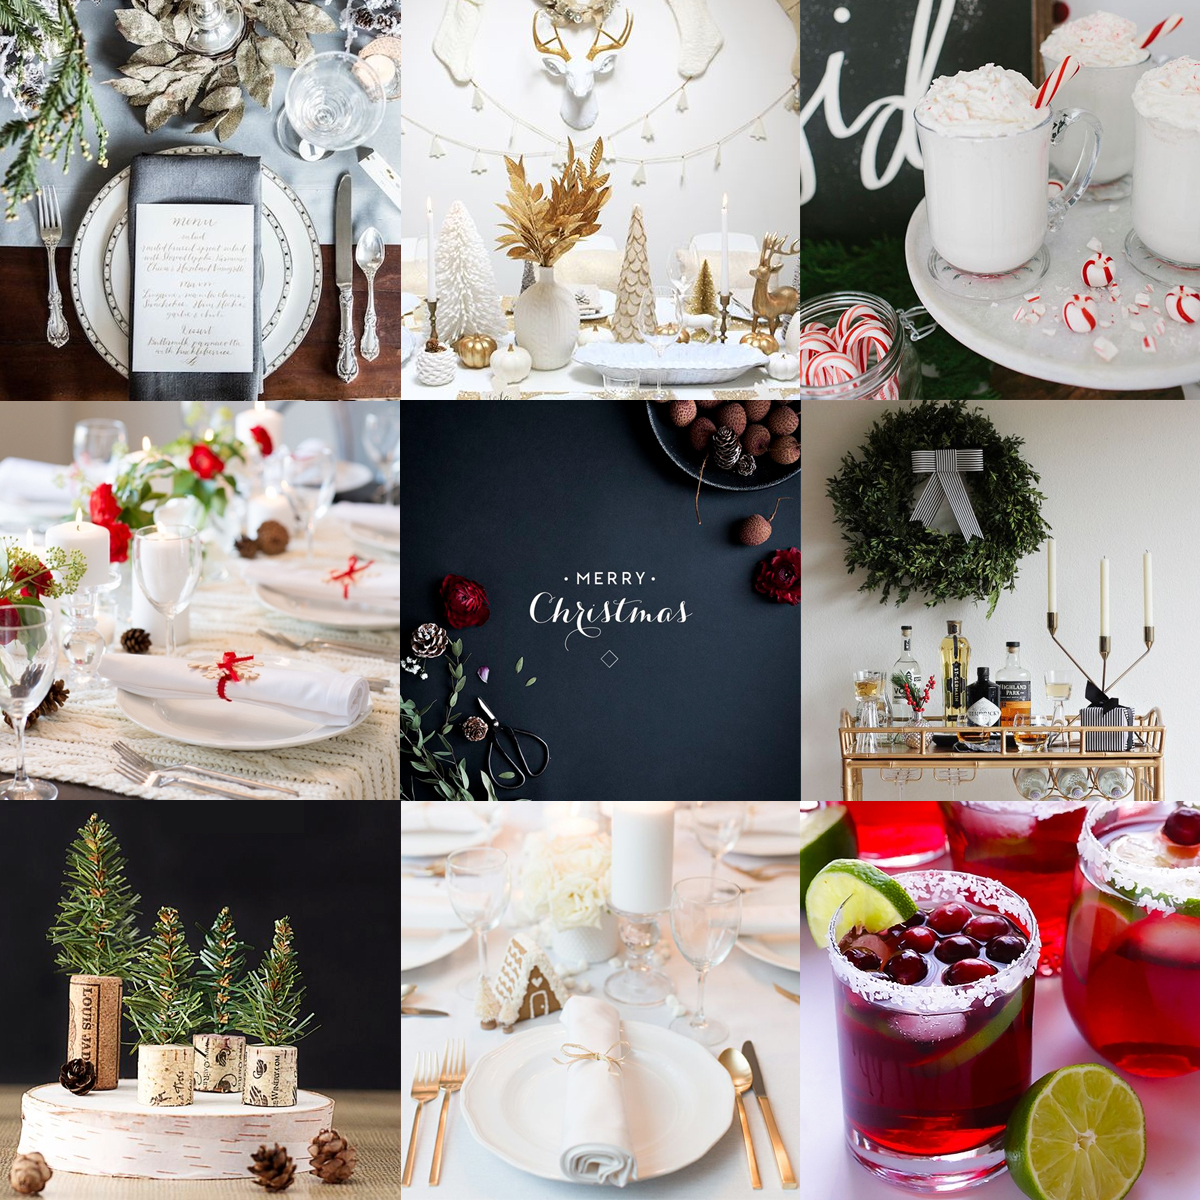 HOW TO THROW A HOLIDAY PARTY LIKE OUR FAVORITE BLOGGERS  FROM LEFT TO RIGHT:  KATE SPADE NEW YORKTABLESCAPE BY SACRAMENTO STREET  //  WHITE + GOLD HOLIDAY PARTY //  KID FRIENDLY PEPPERMINT DRINKS //  RED + WHITE HOLIDAY TABLESCAPE  //  MERRY CHRISTMAS PRINT  //  HOLIDAY BAR CART DIY BOW  //  DIY CHRISTMAS CORK TREES  //  WHITE CHRISTMAS TABLESCAPE  //  CRANBERRY MARGARITAS